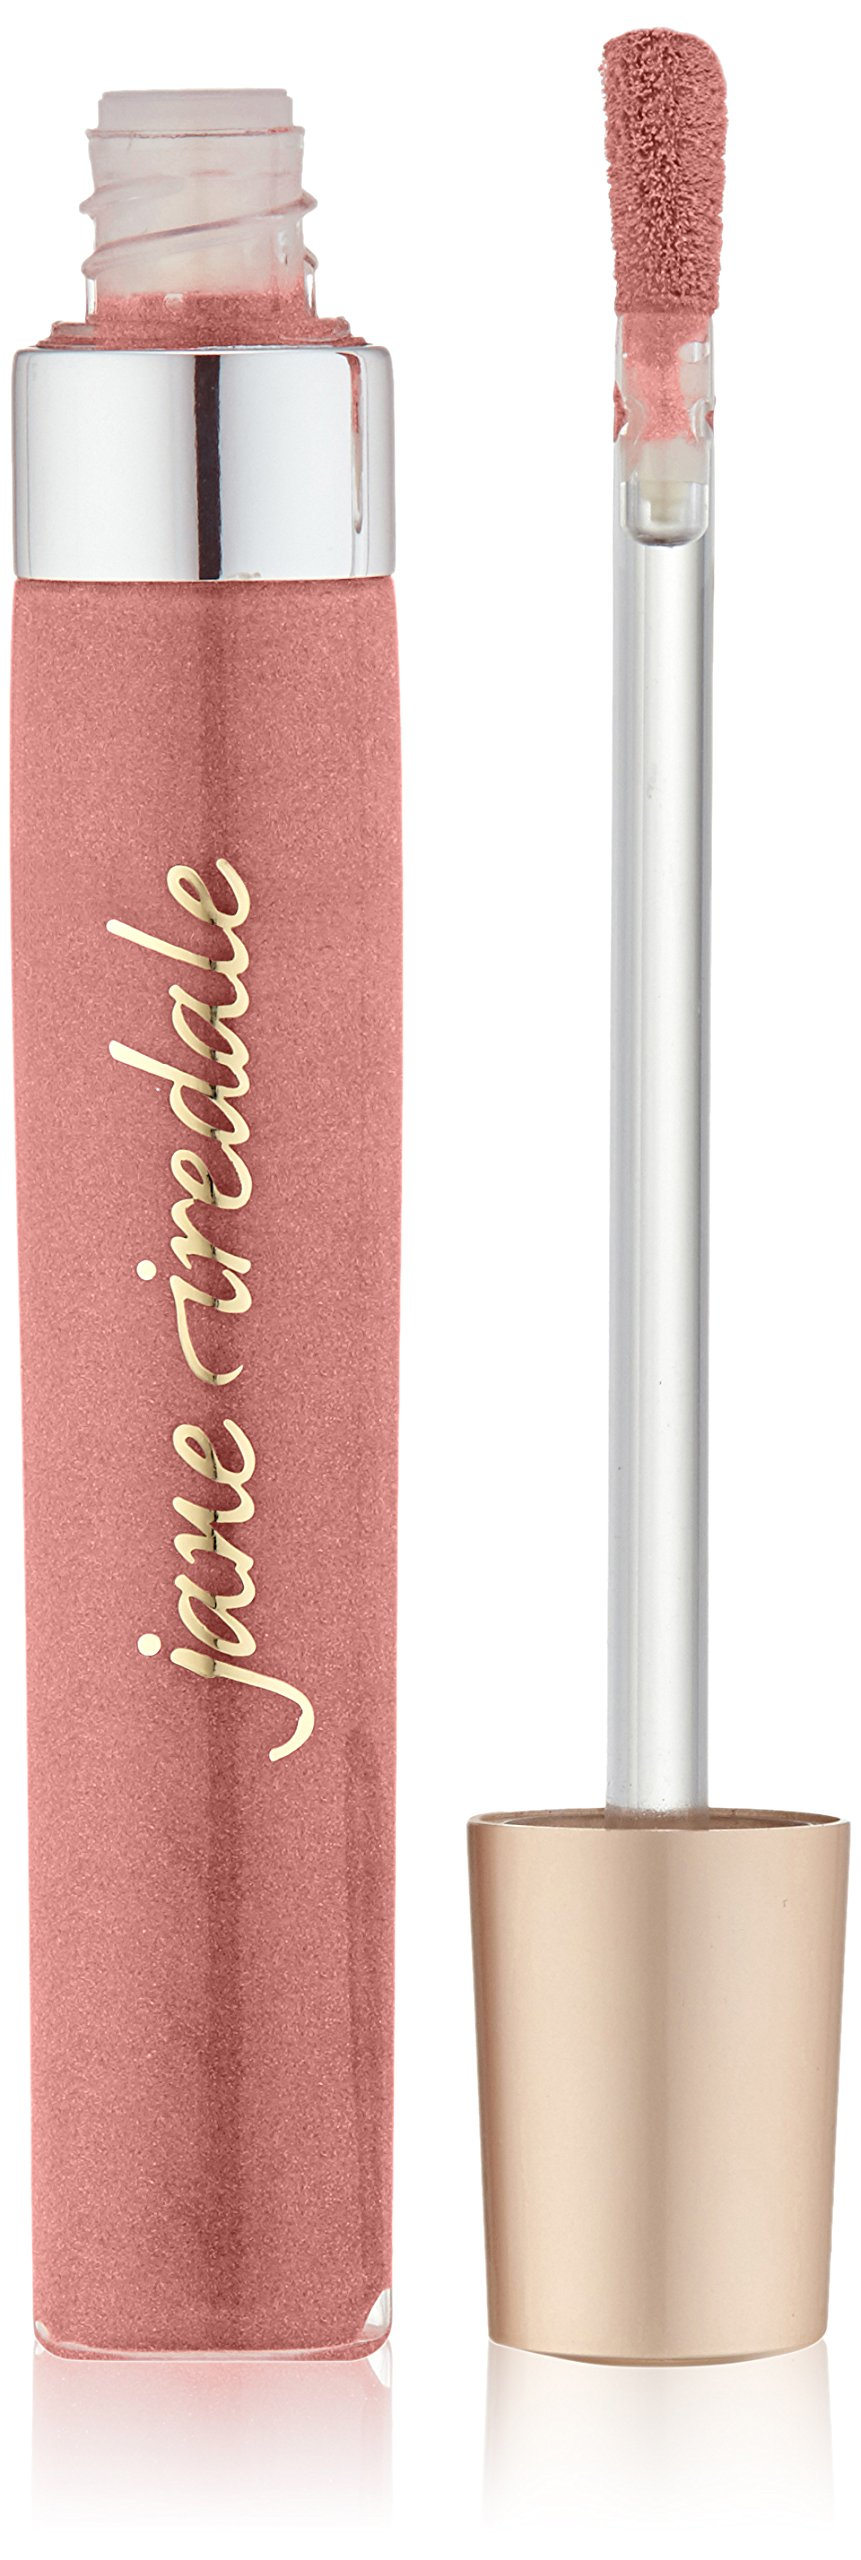 Just Kissed Lip Plumper by Jane Iredale #13